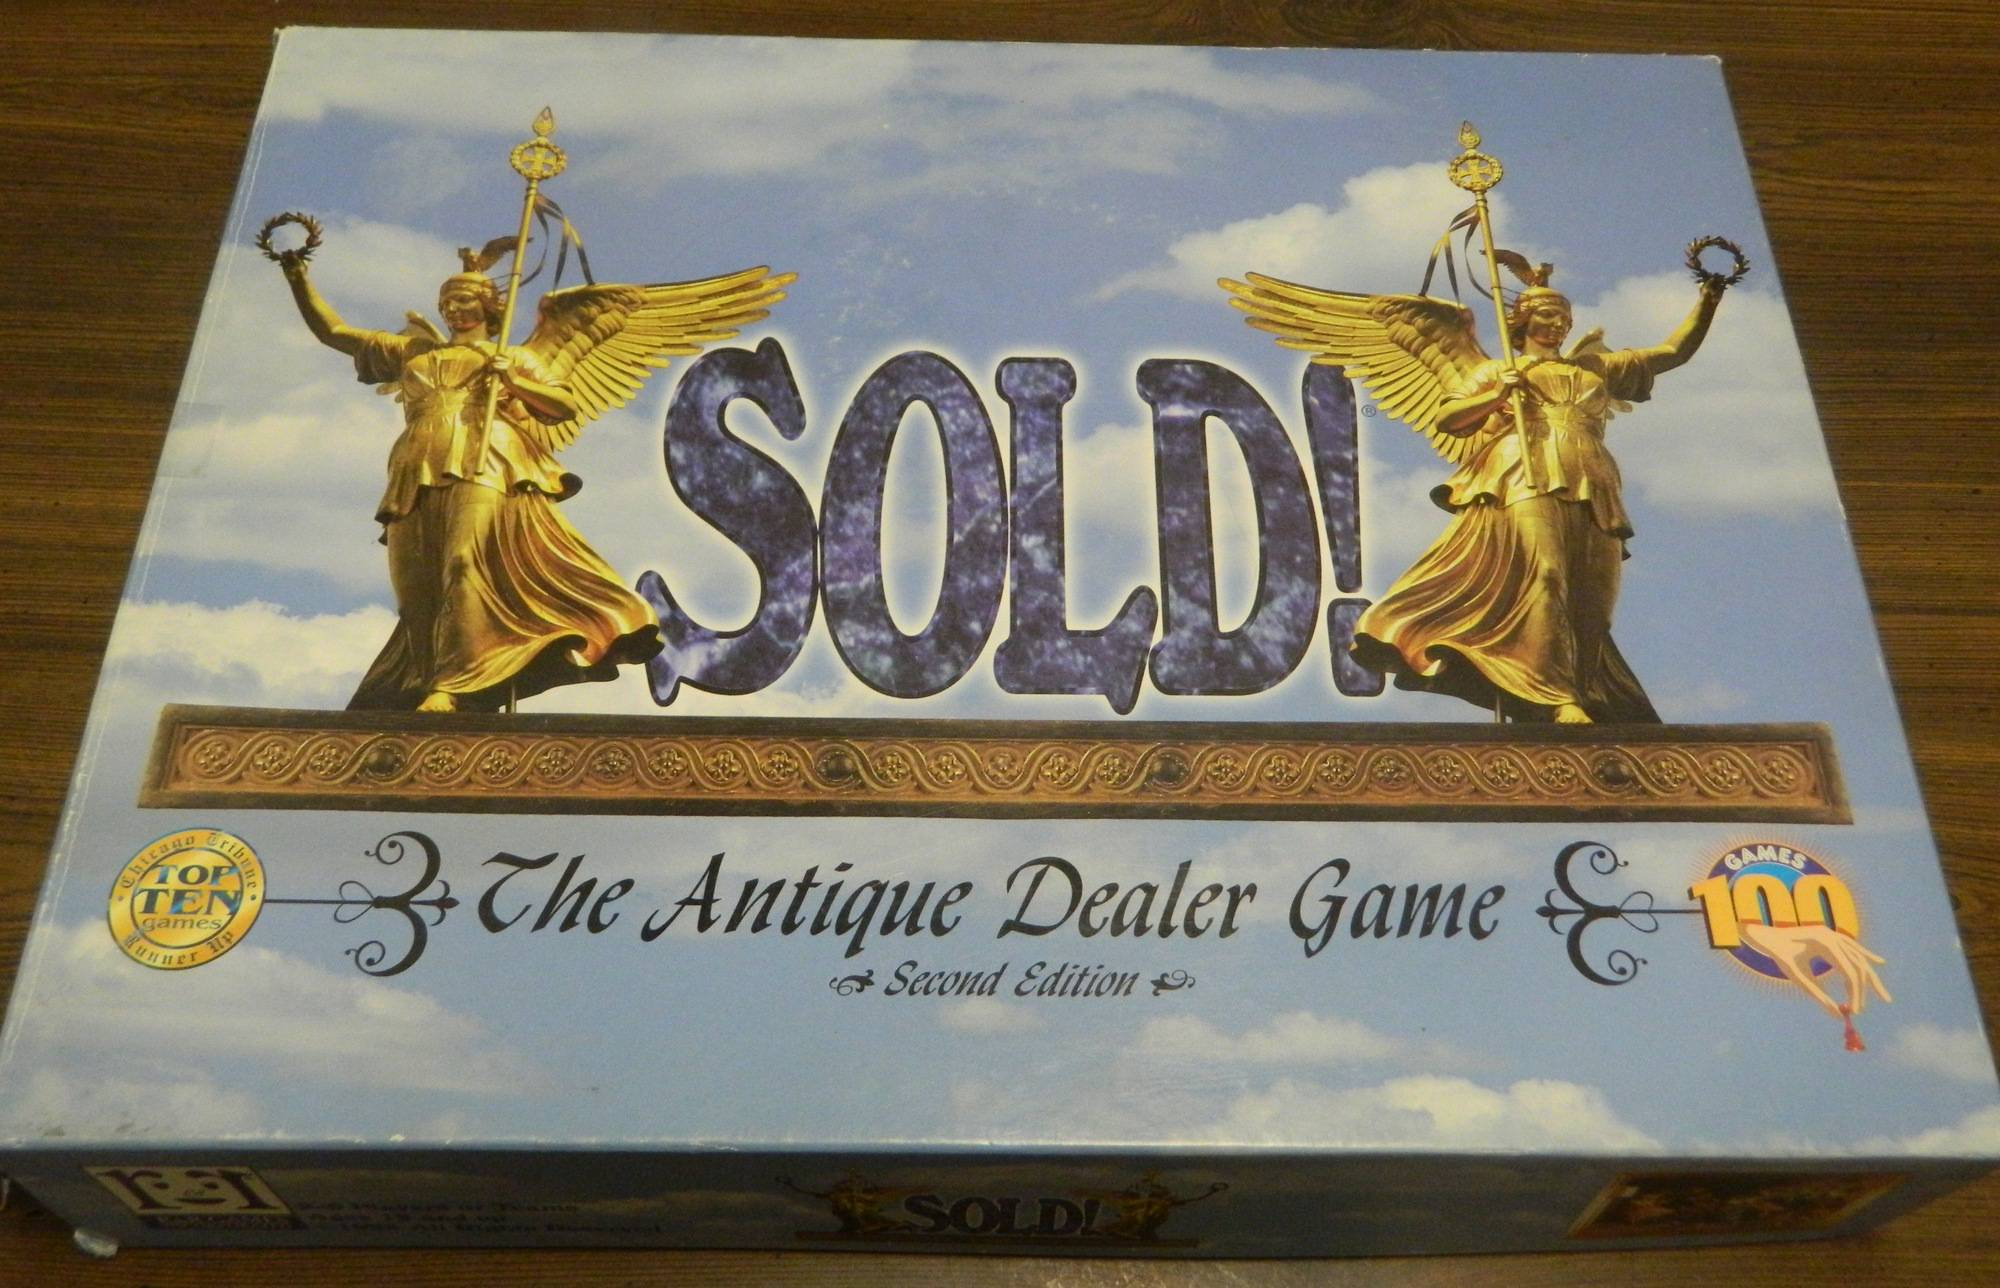 Box for Sold! The Antique Dealer Game